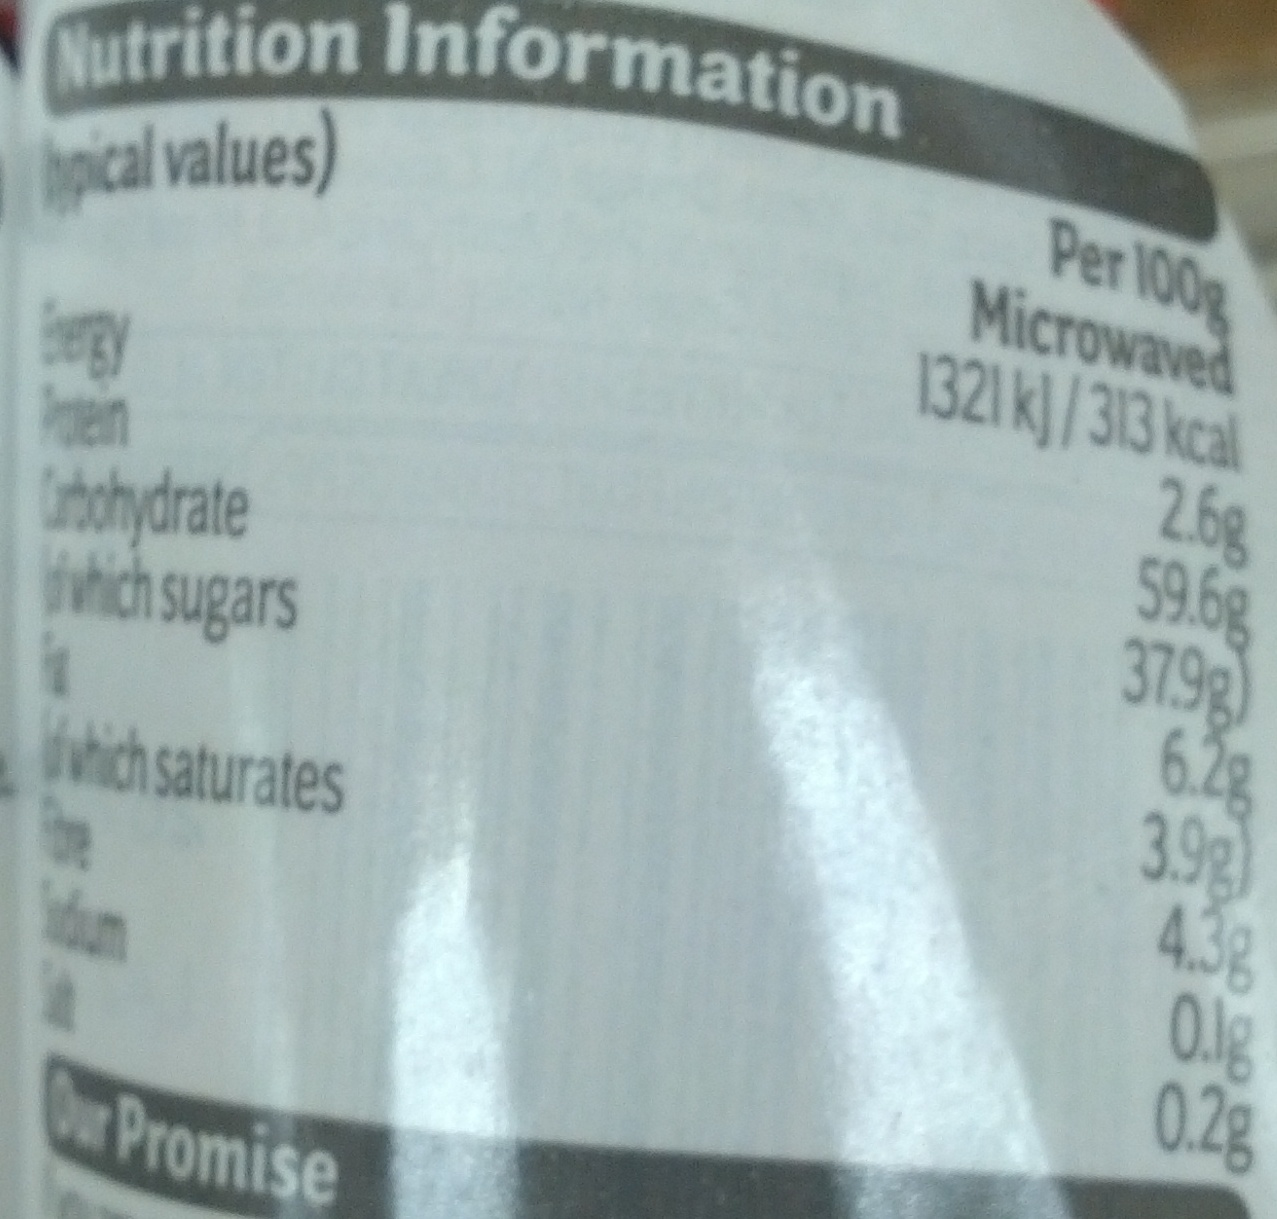 Christmas Rich Fruit Pudding - Nutrition facts